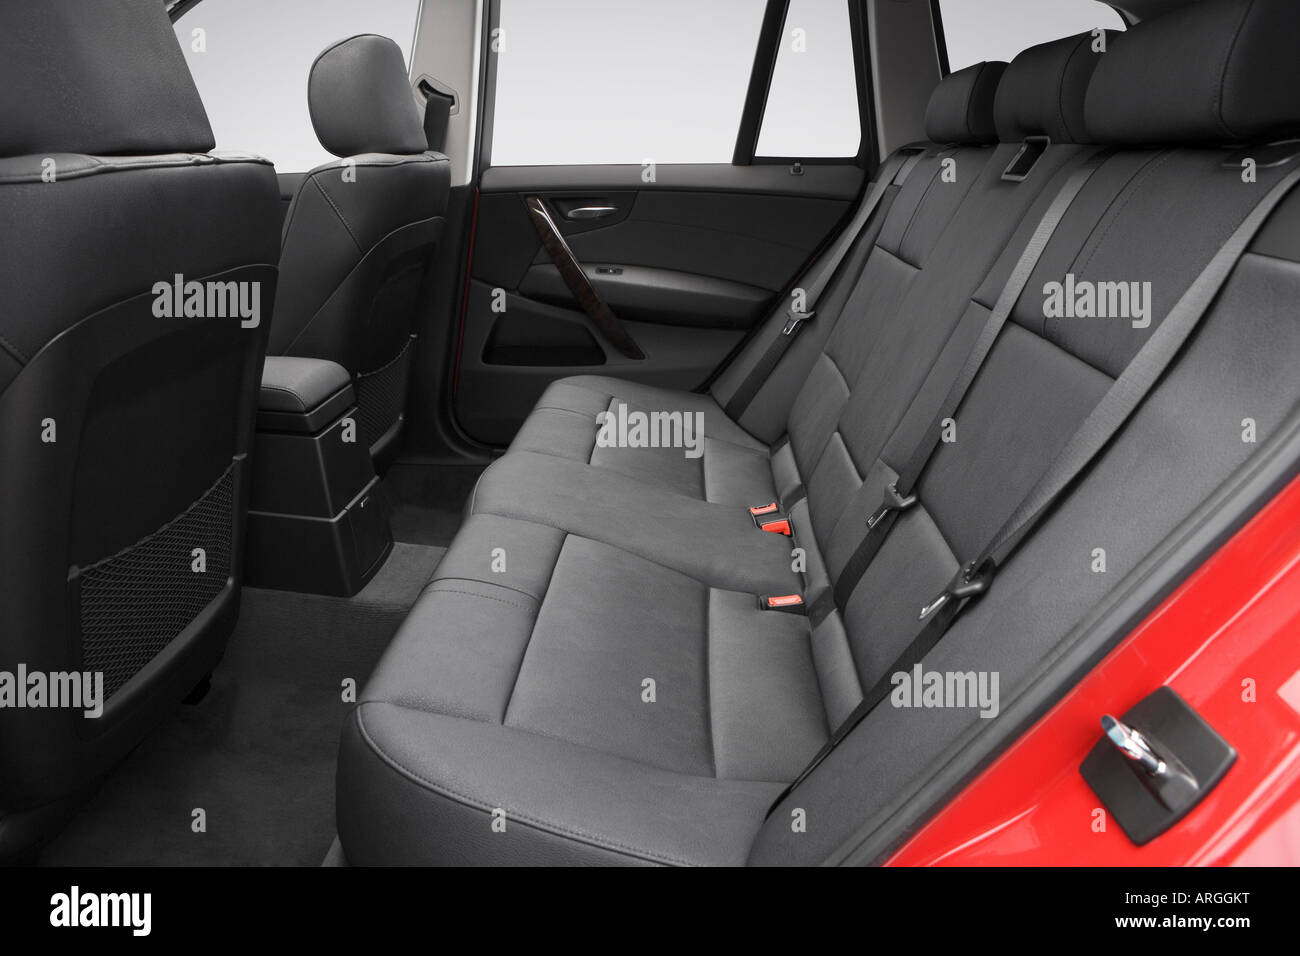 2007 Bmw X3 3 0si In Red Rear Seats Stock Photo Alamy